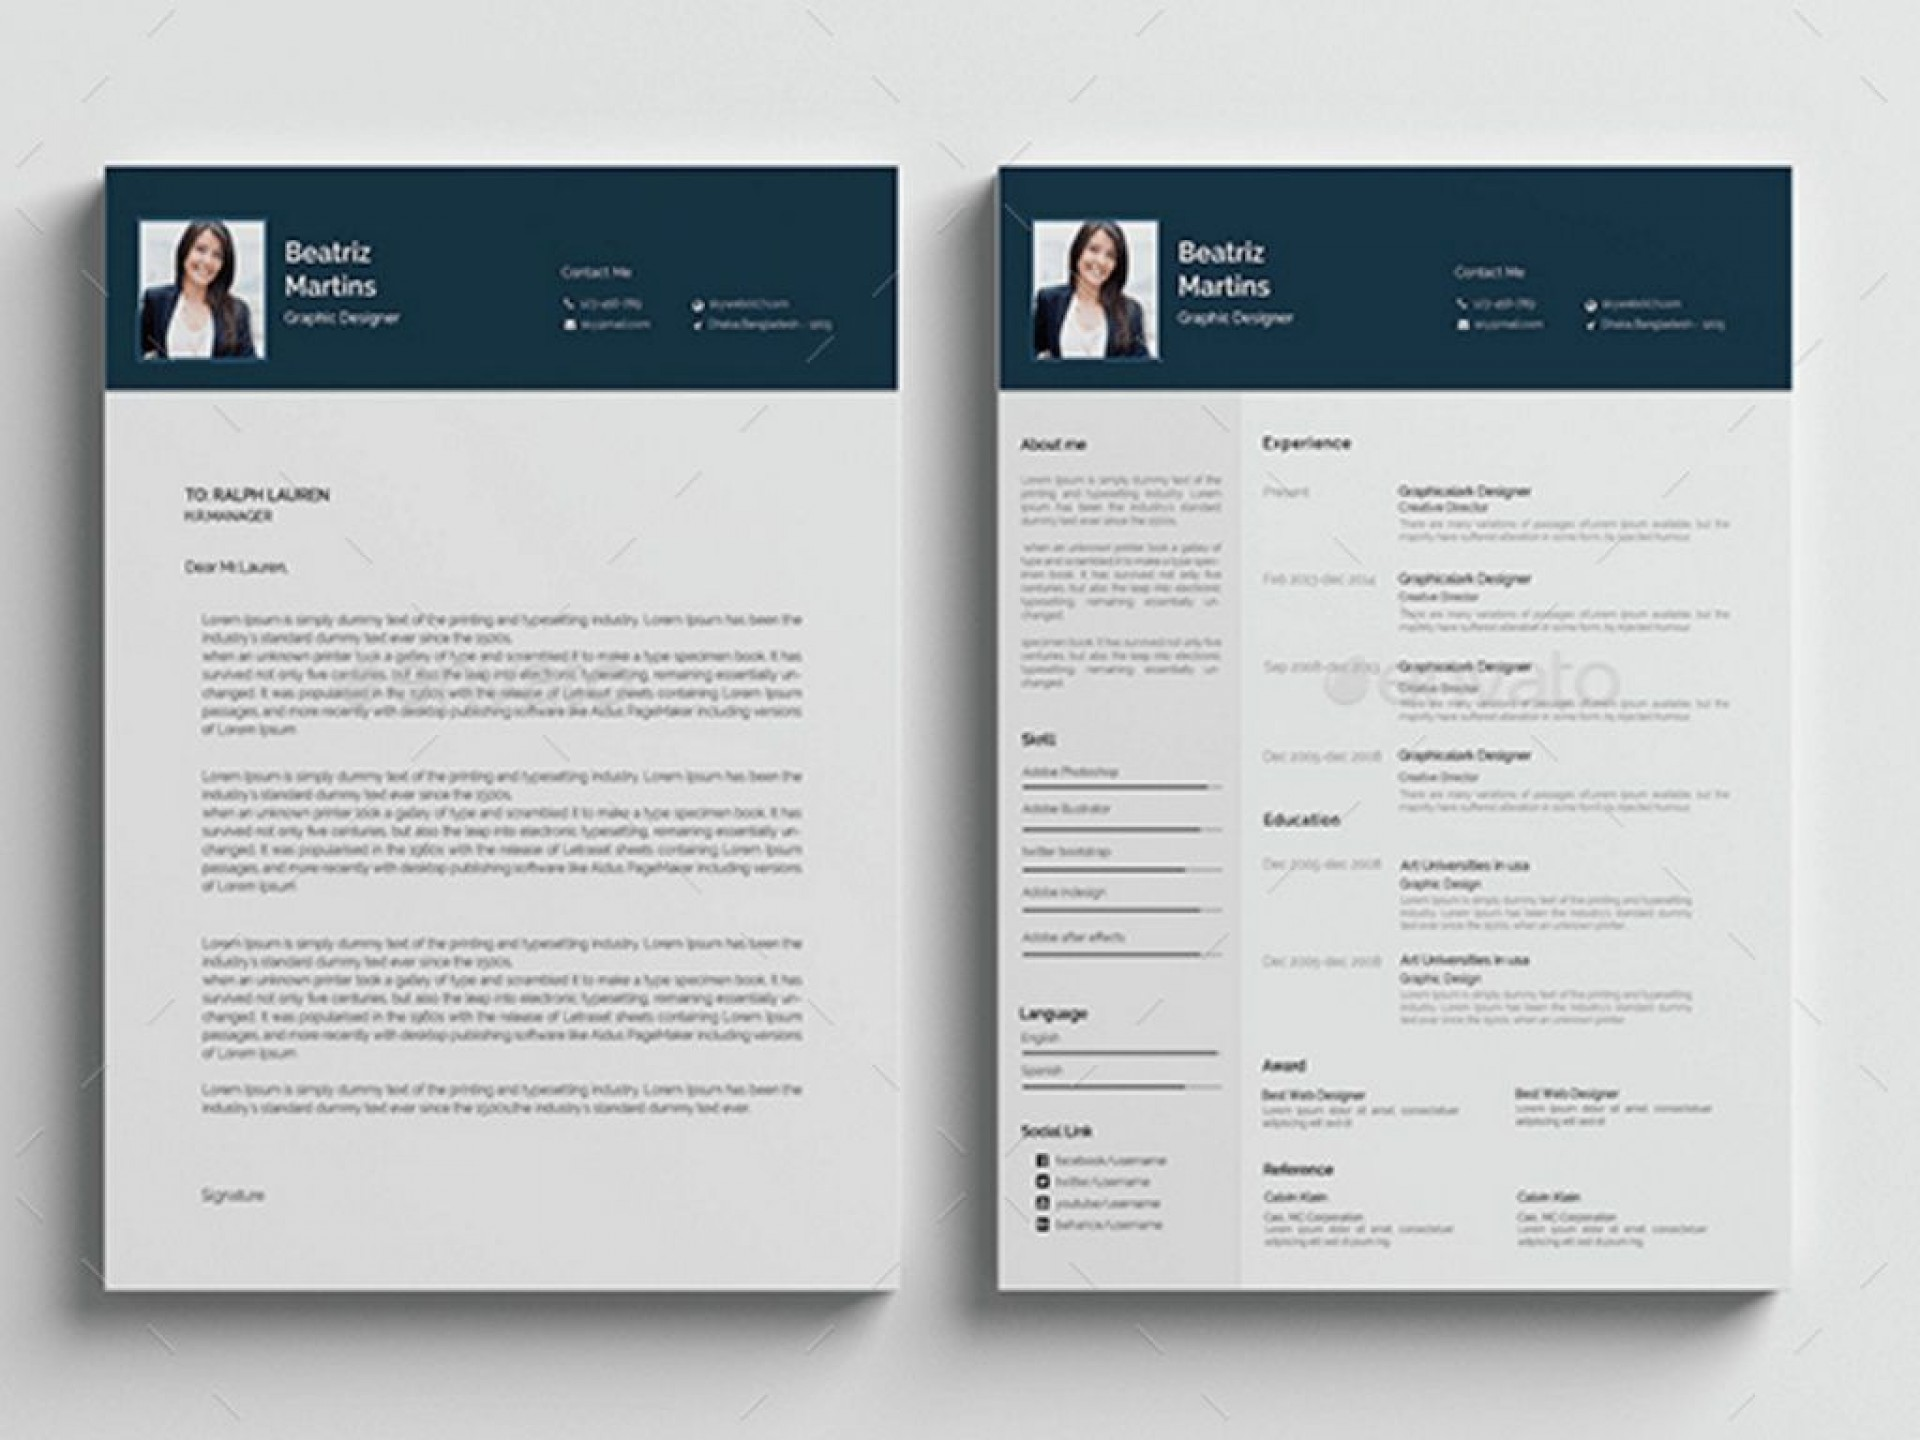 008 Phenomenal Free Psd Resume Template Sample  Templates Attractive Download Creative (psd Id) Curriculum Vitae1920